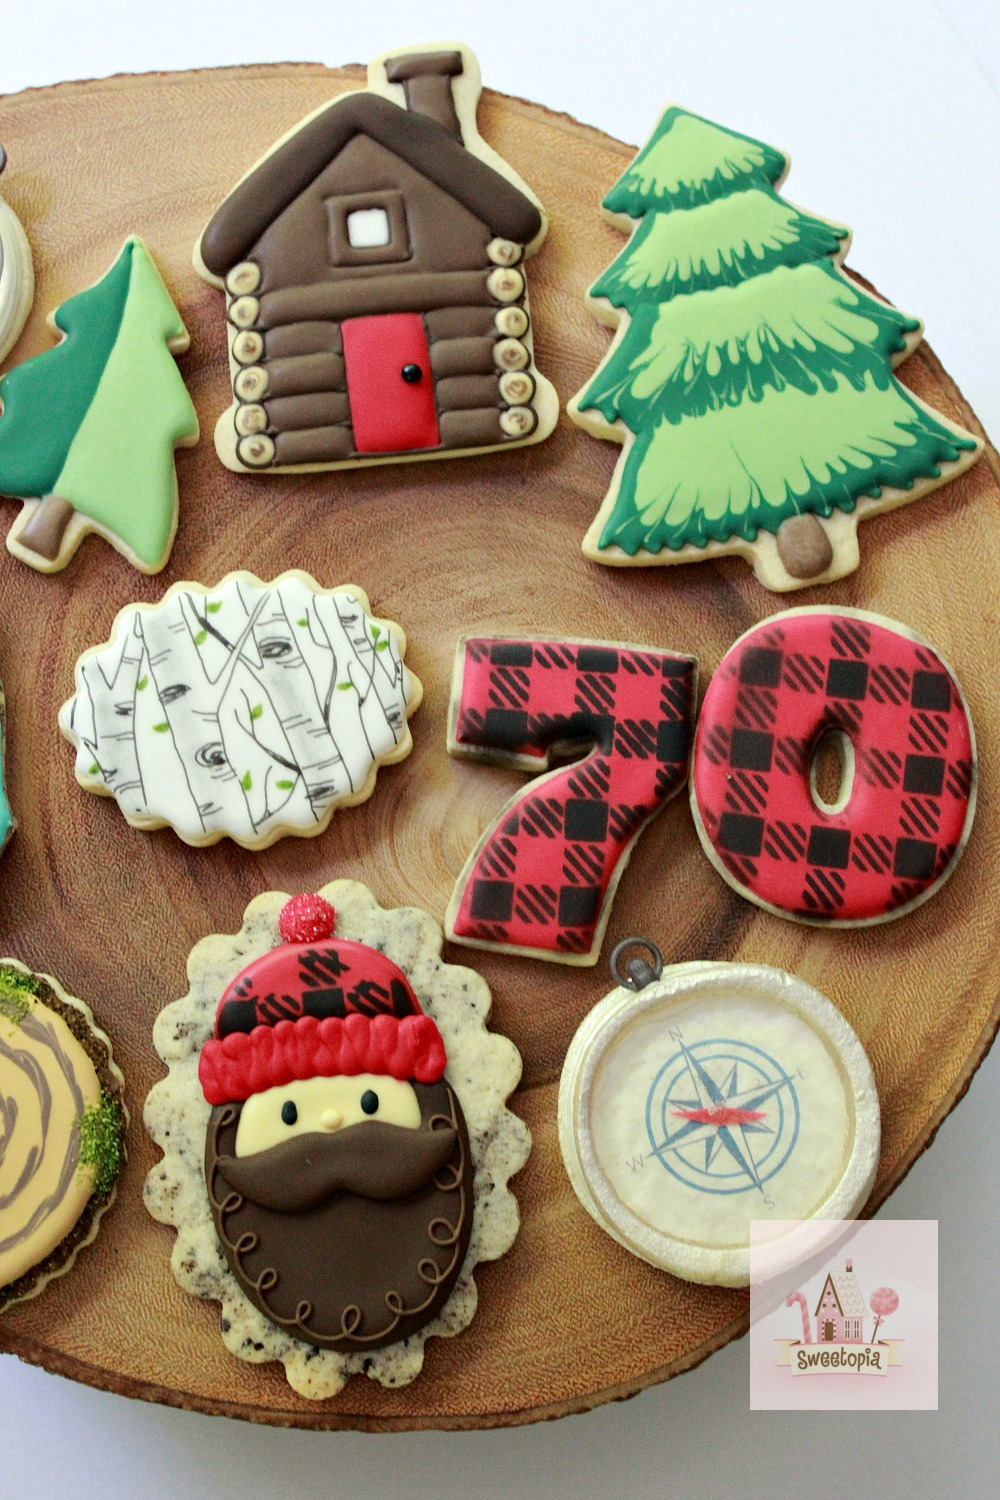 How to Decorate Lumberjack Cookies with Royal Icing Video Tutorial Sweetopia